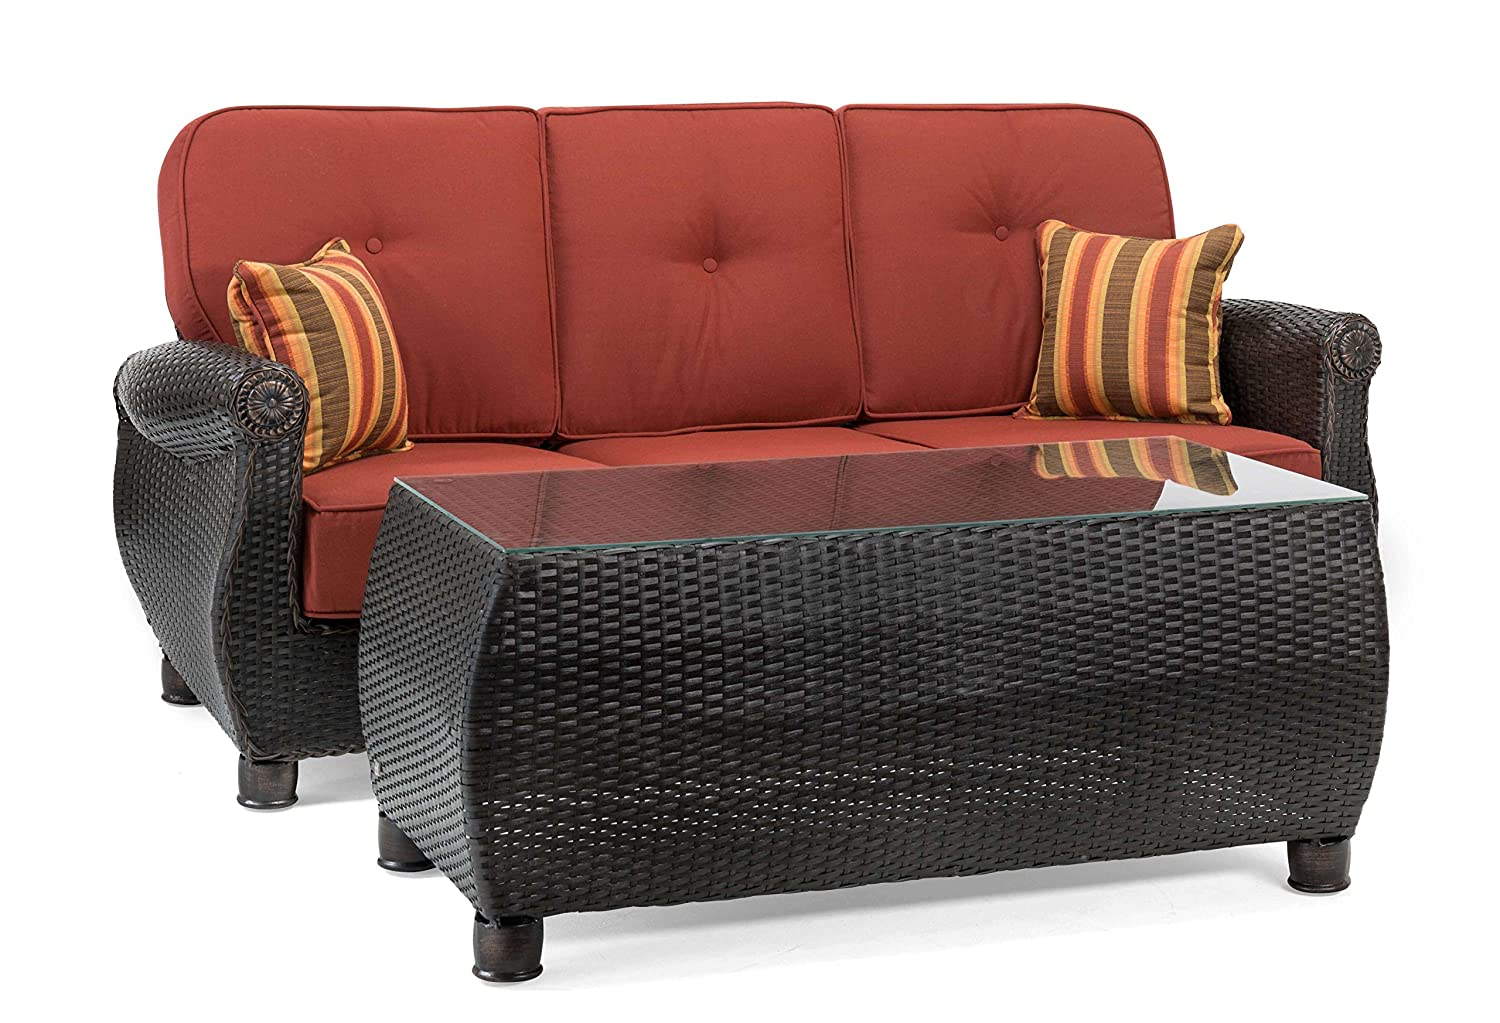 Amazon com la z boy outdoor breckenridge resin wicker patio furniture sofa with pillows and coffee table set brick red with all weather sunbrella